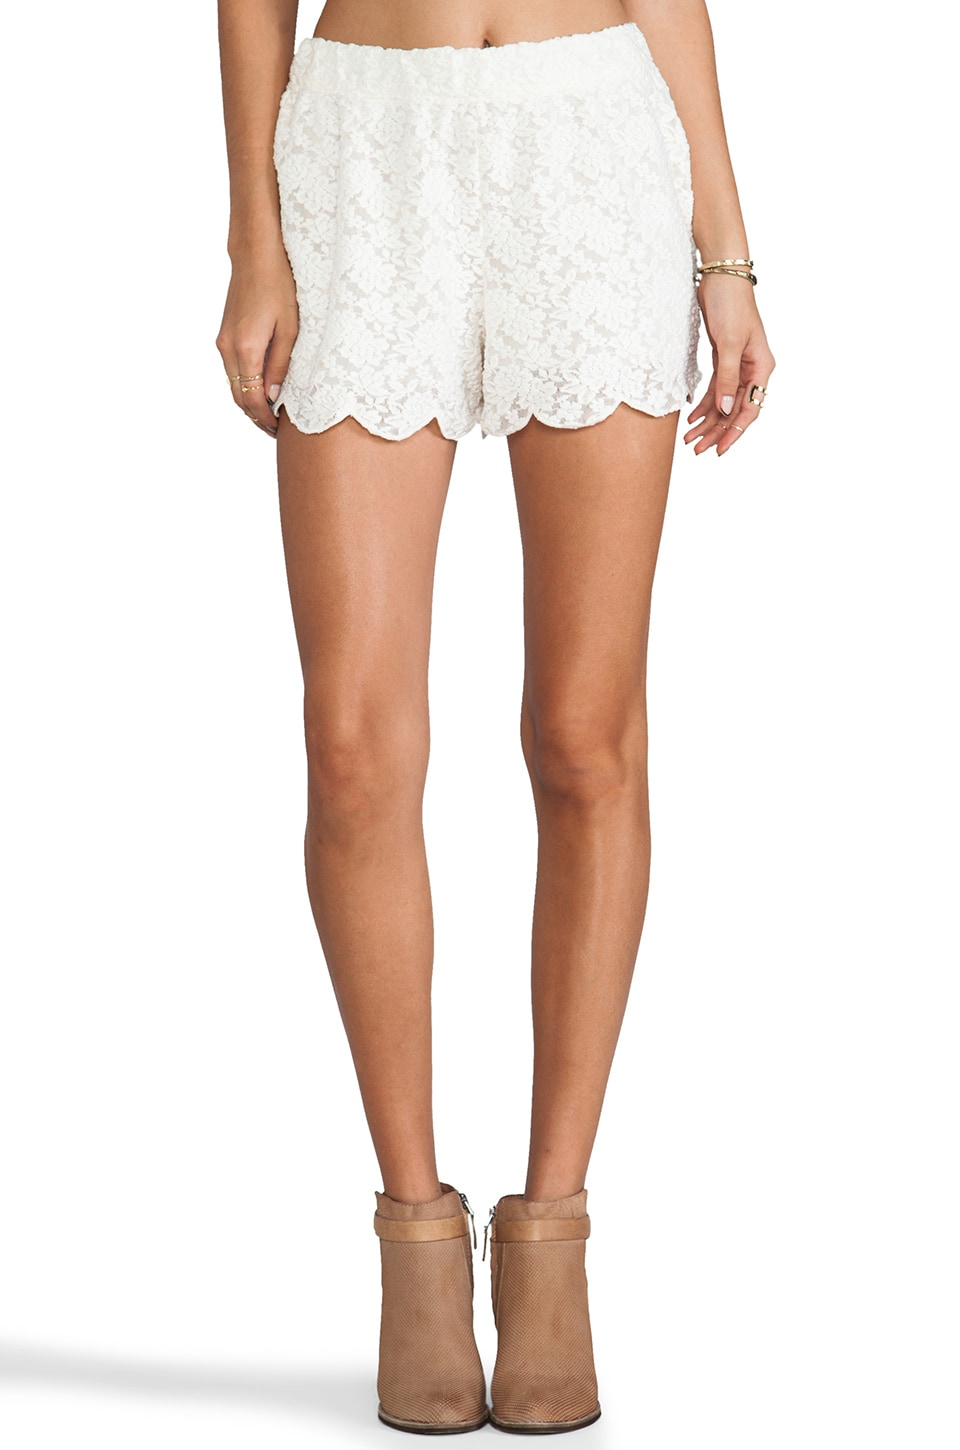 Free People Scallop Lace Short in Ivory